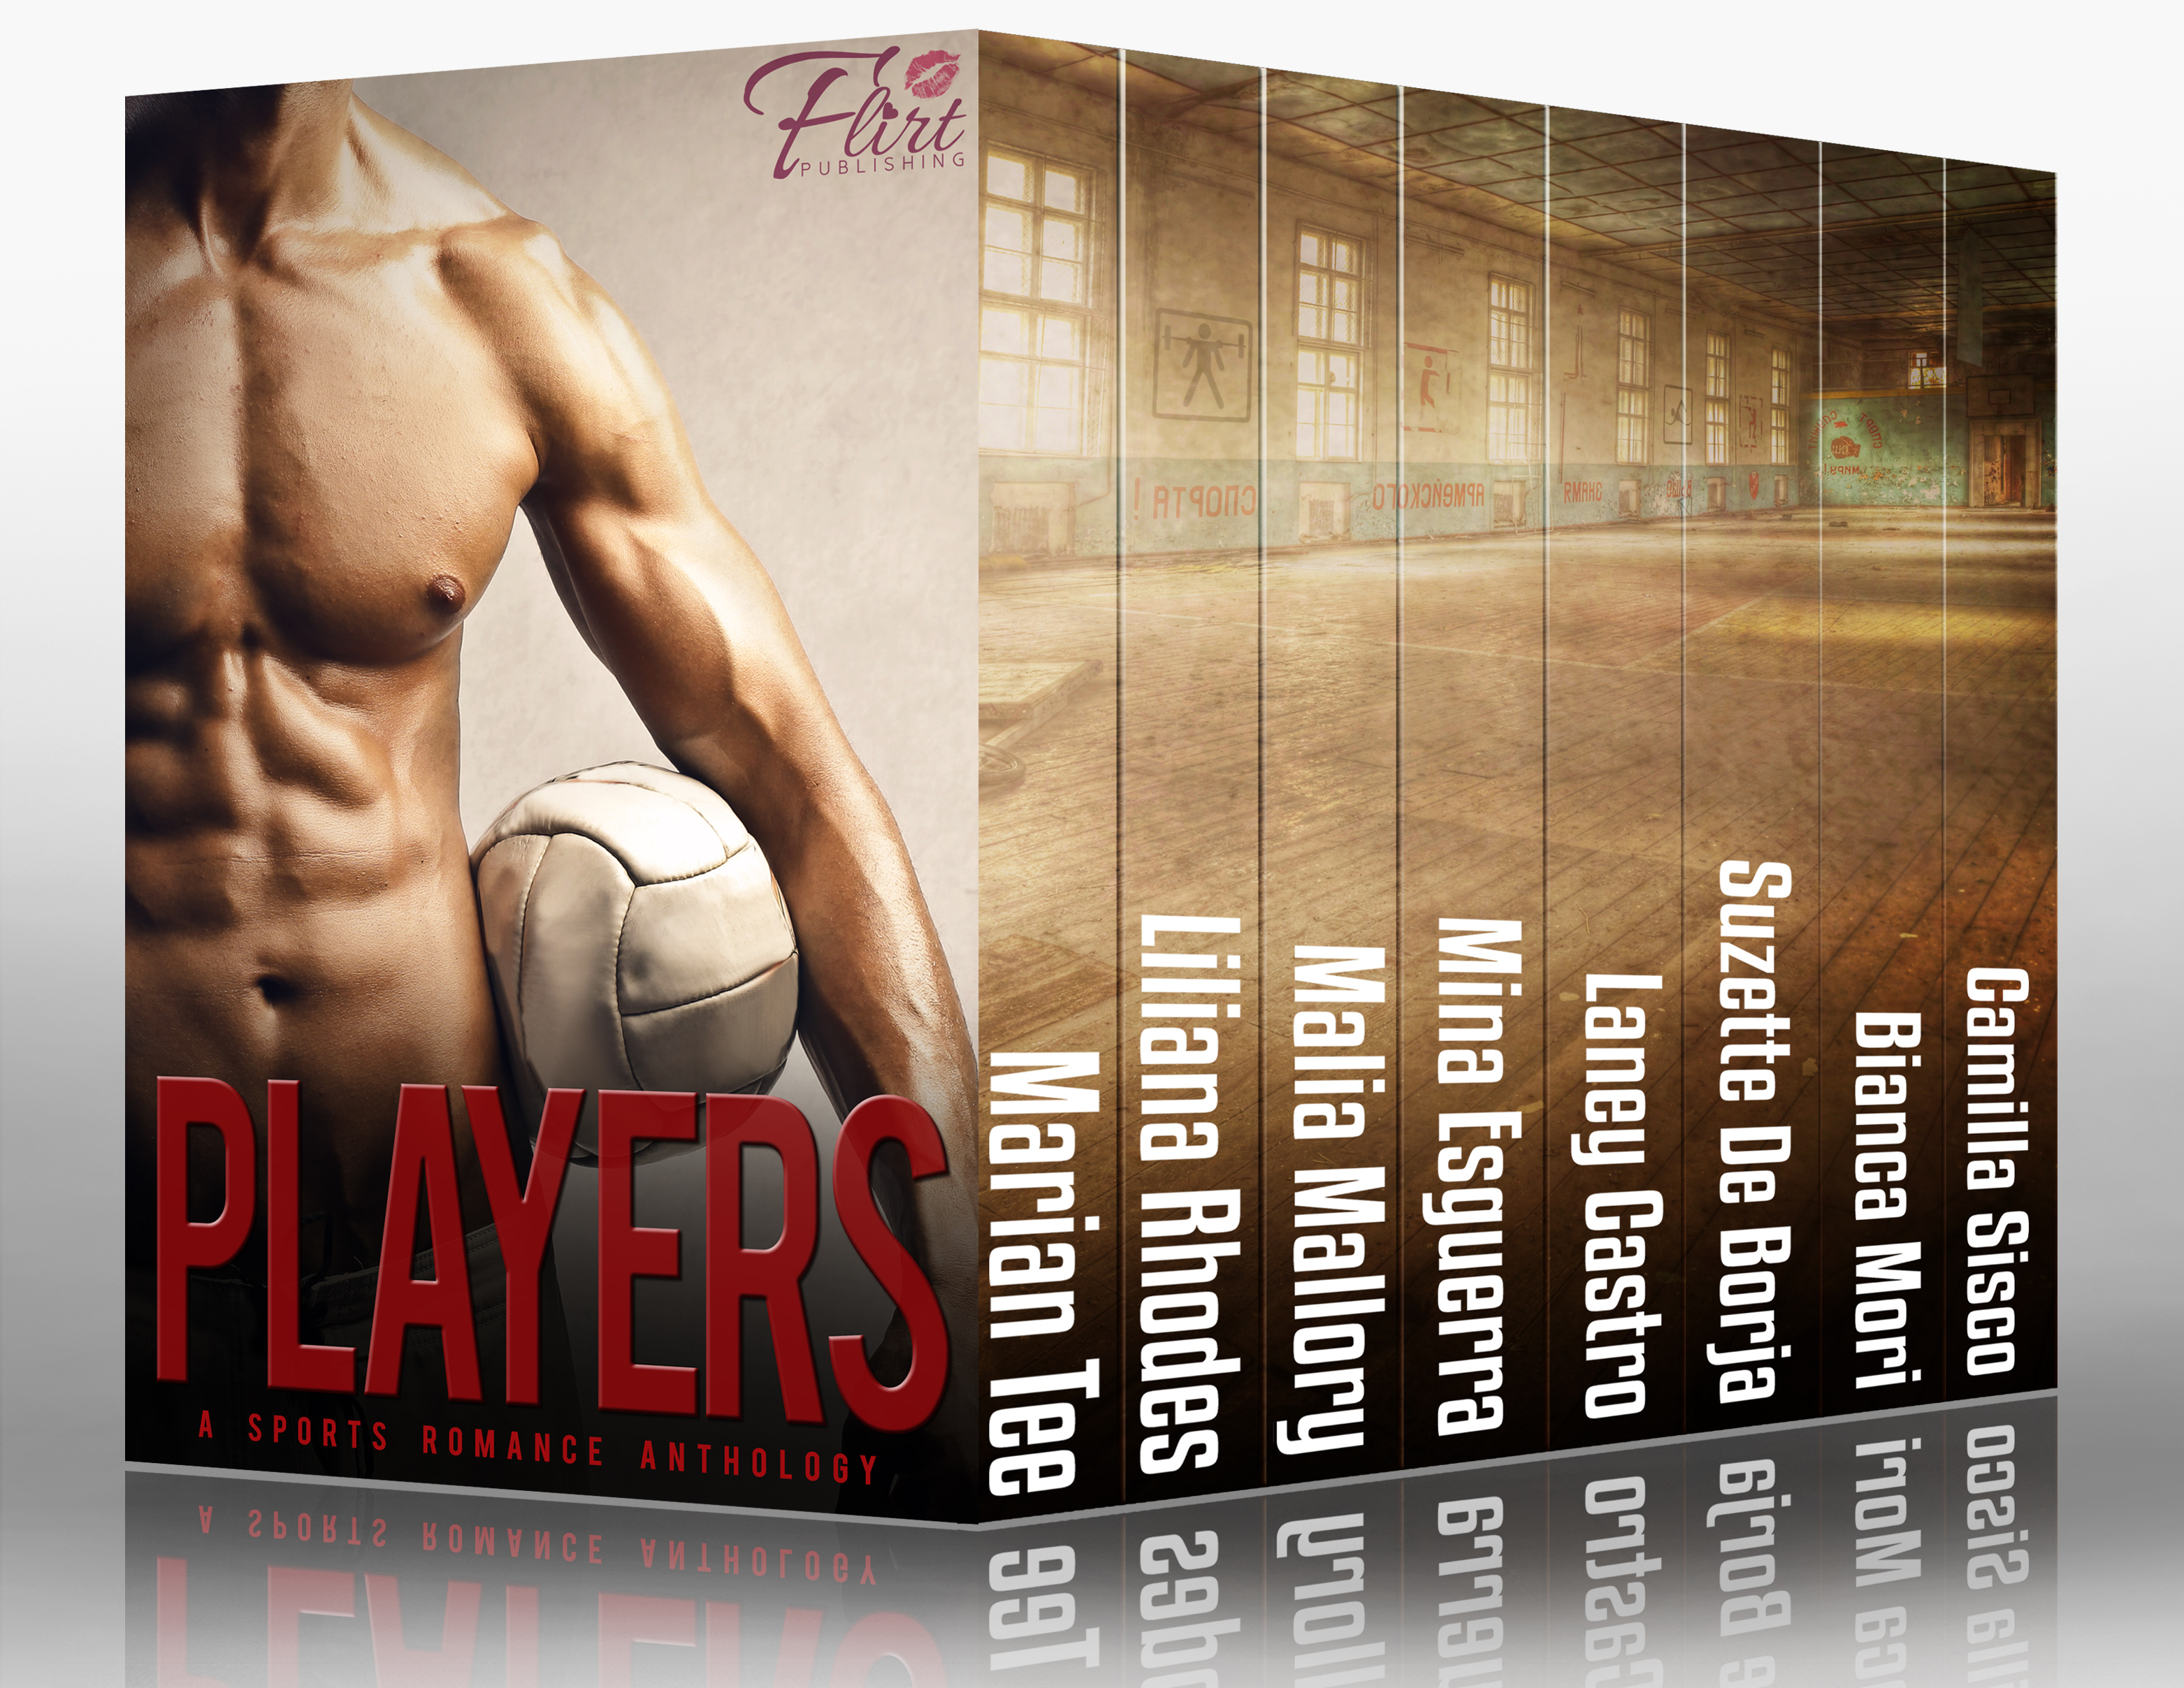 Players A Sports Romance Anthology